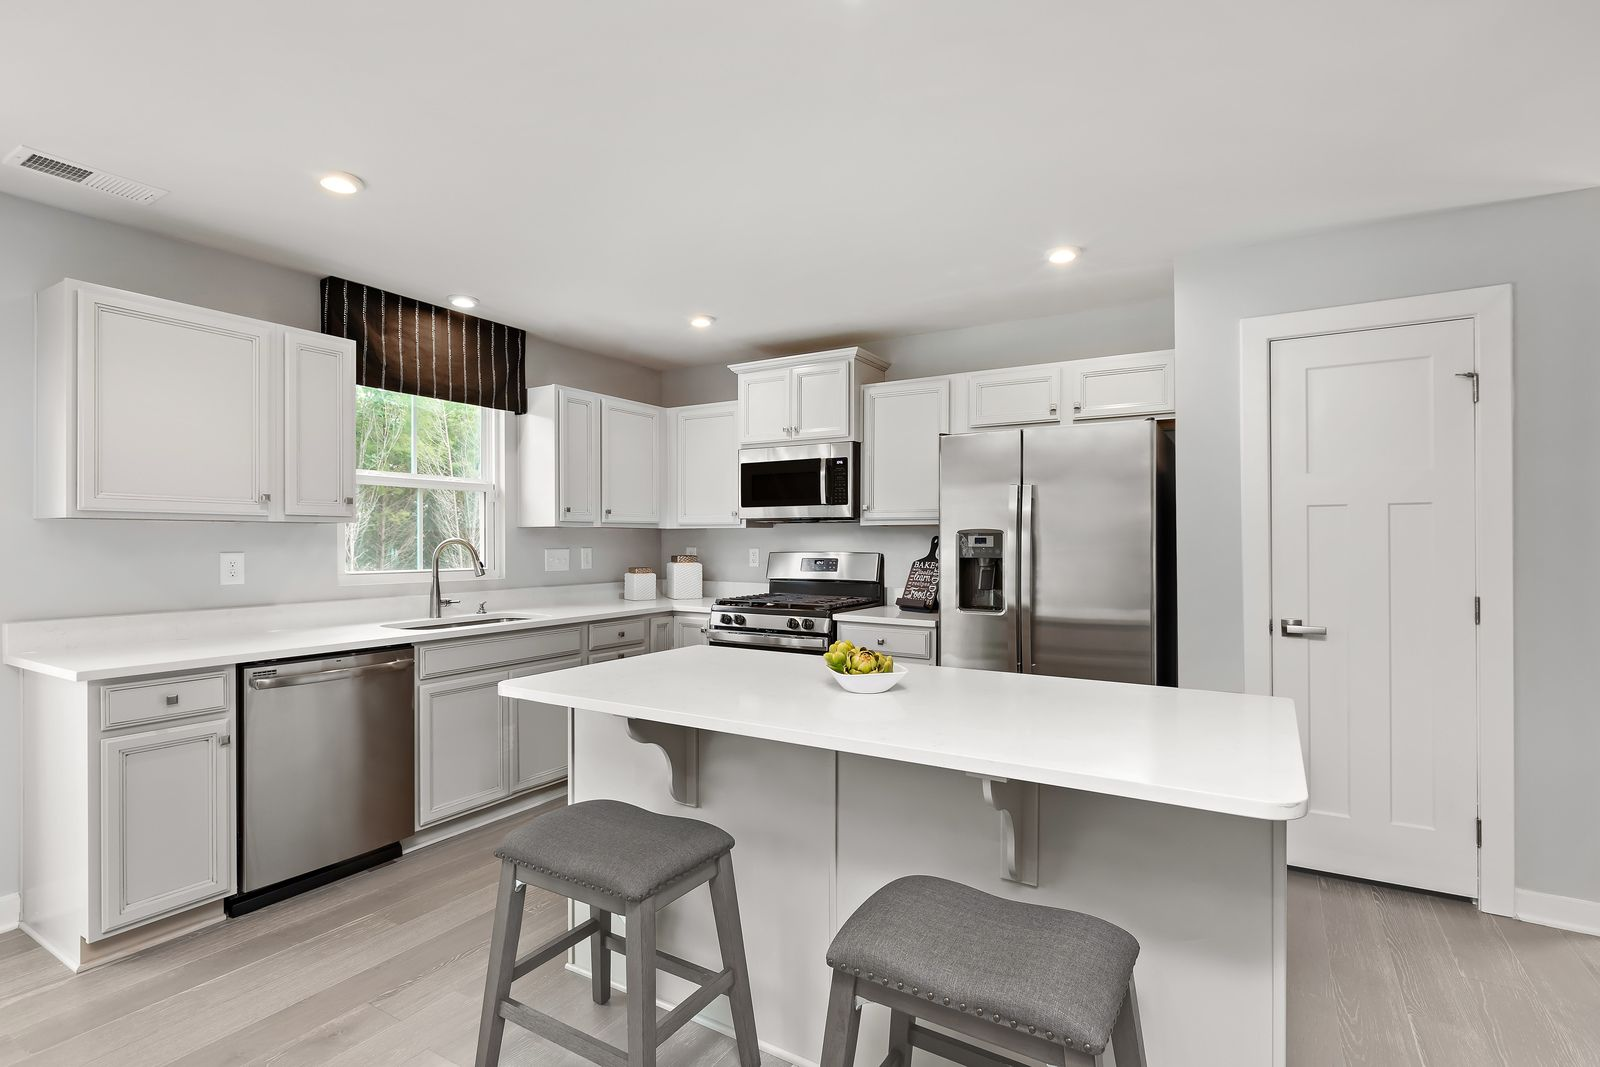 Kitchen featured in the Grand Cayman By Ryan Homes in Greenville-Spartanburg, SC